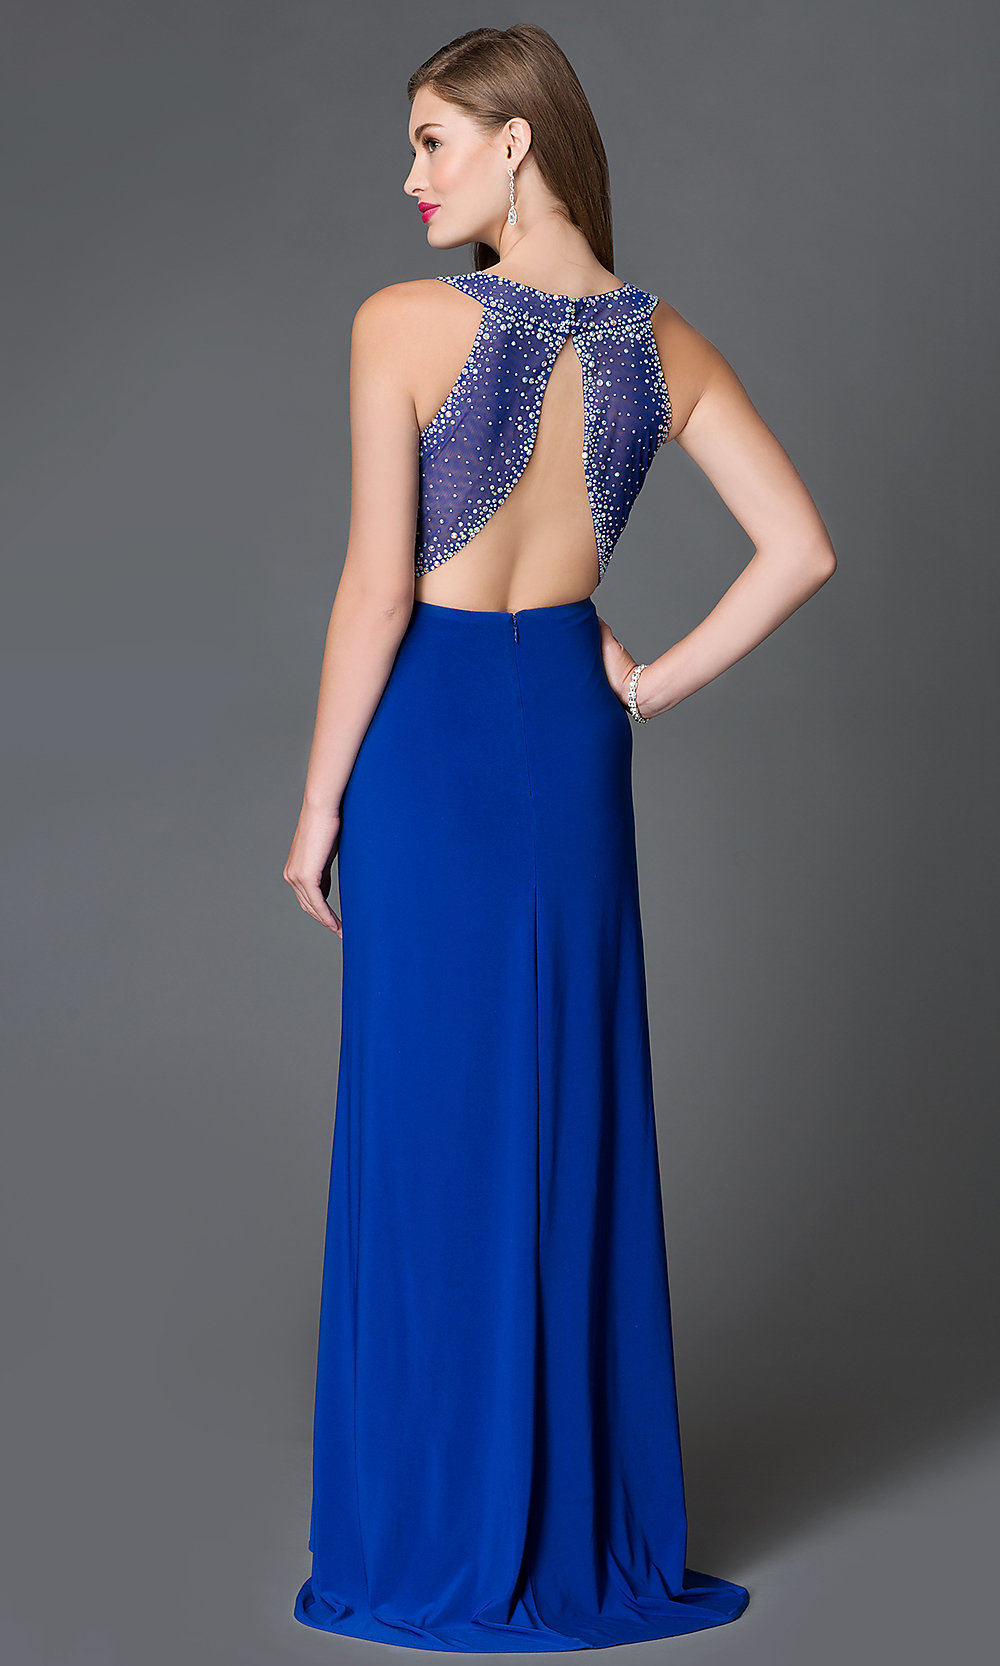 Blue and Gold Prom Dress